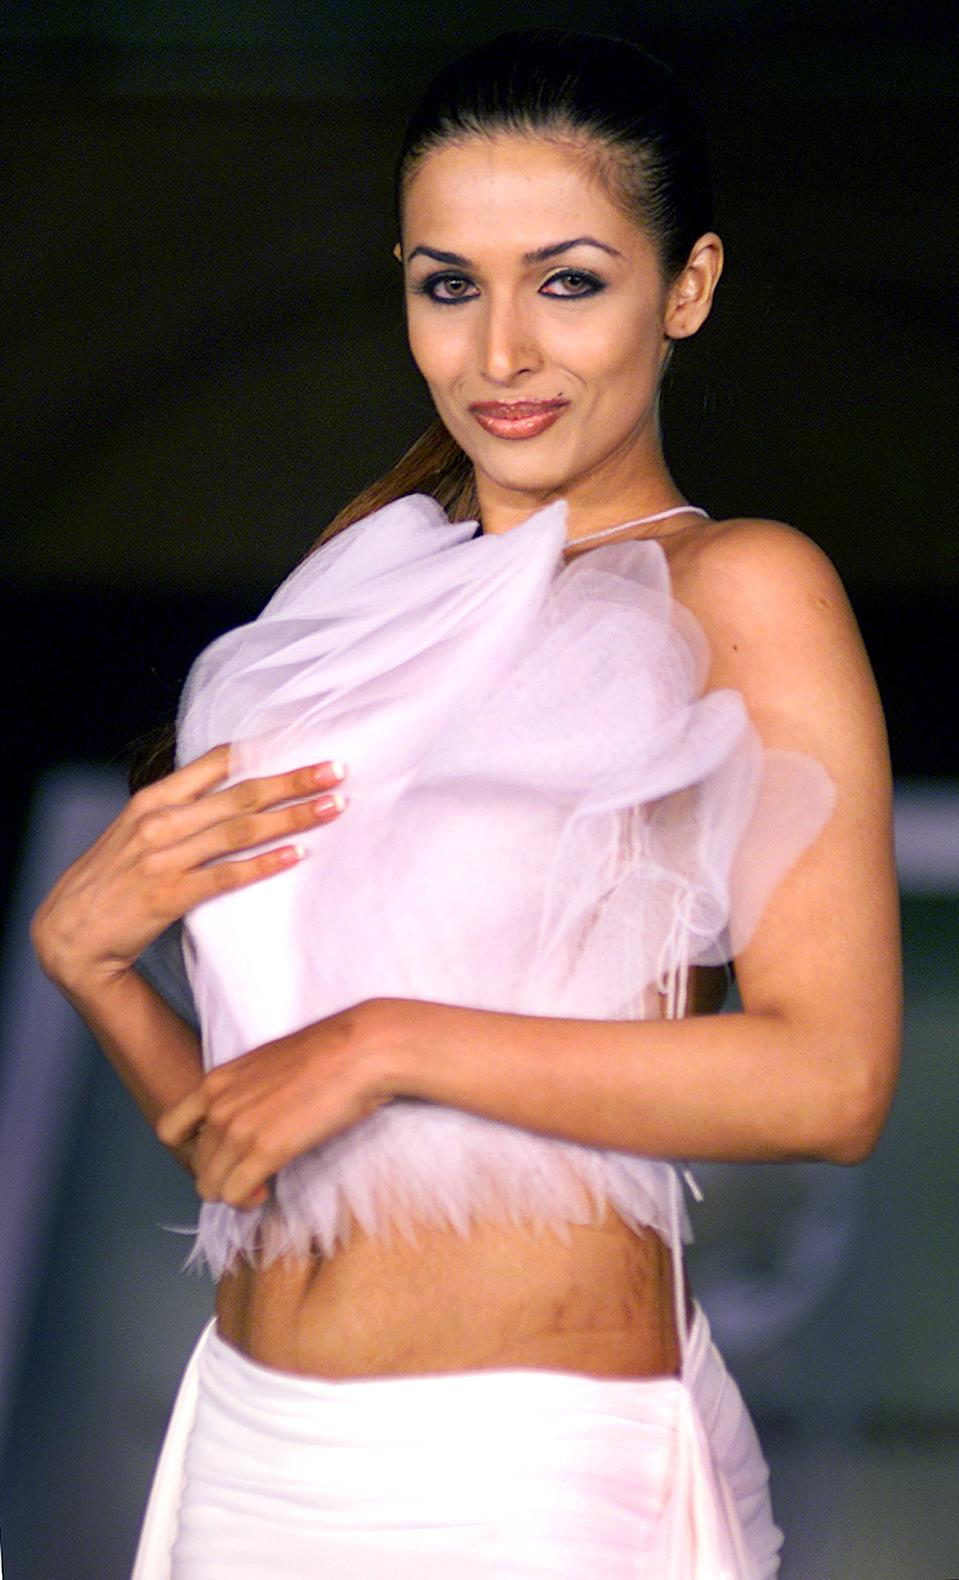 Bollywood actress Malaika displays a special collection during a fashion show organised by the Cancer Patients Aid Association (CPA) in Bombay May 31, 2003. The show was organised on 'World No Tobacco Day' to create awareness in Bollywood against portraying film stars smoking in movies. A World Health Organization (WHO) study on Indian films showed 80% of them depicted the use of tobacco. REUTERS/Roy Madhur RM/TW